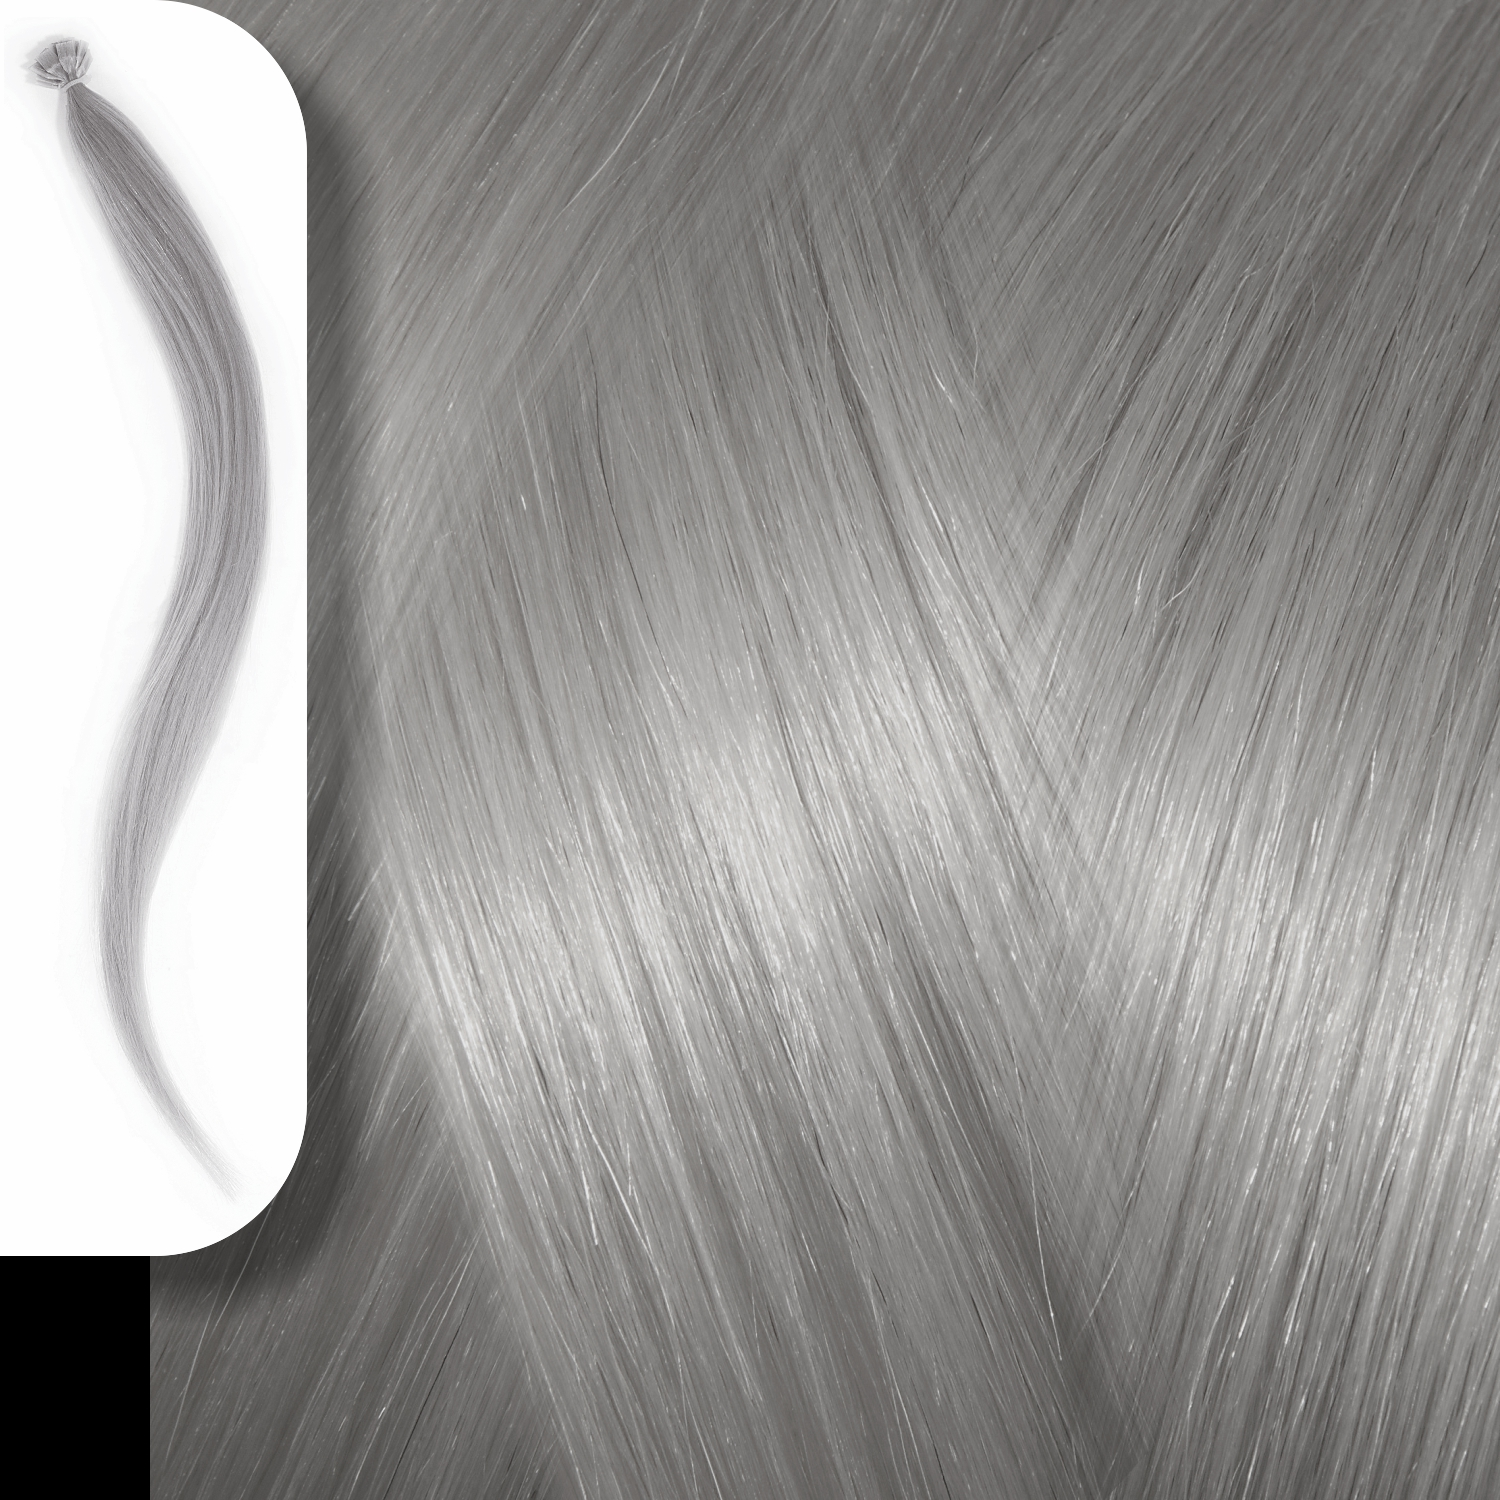 KERATIN HUMAN HAIR EXTENSIONS GREY-50cm